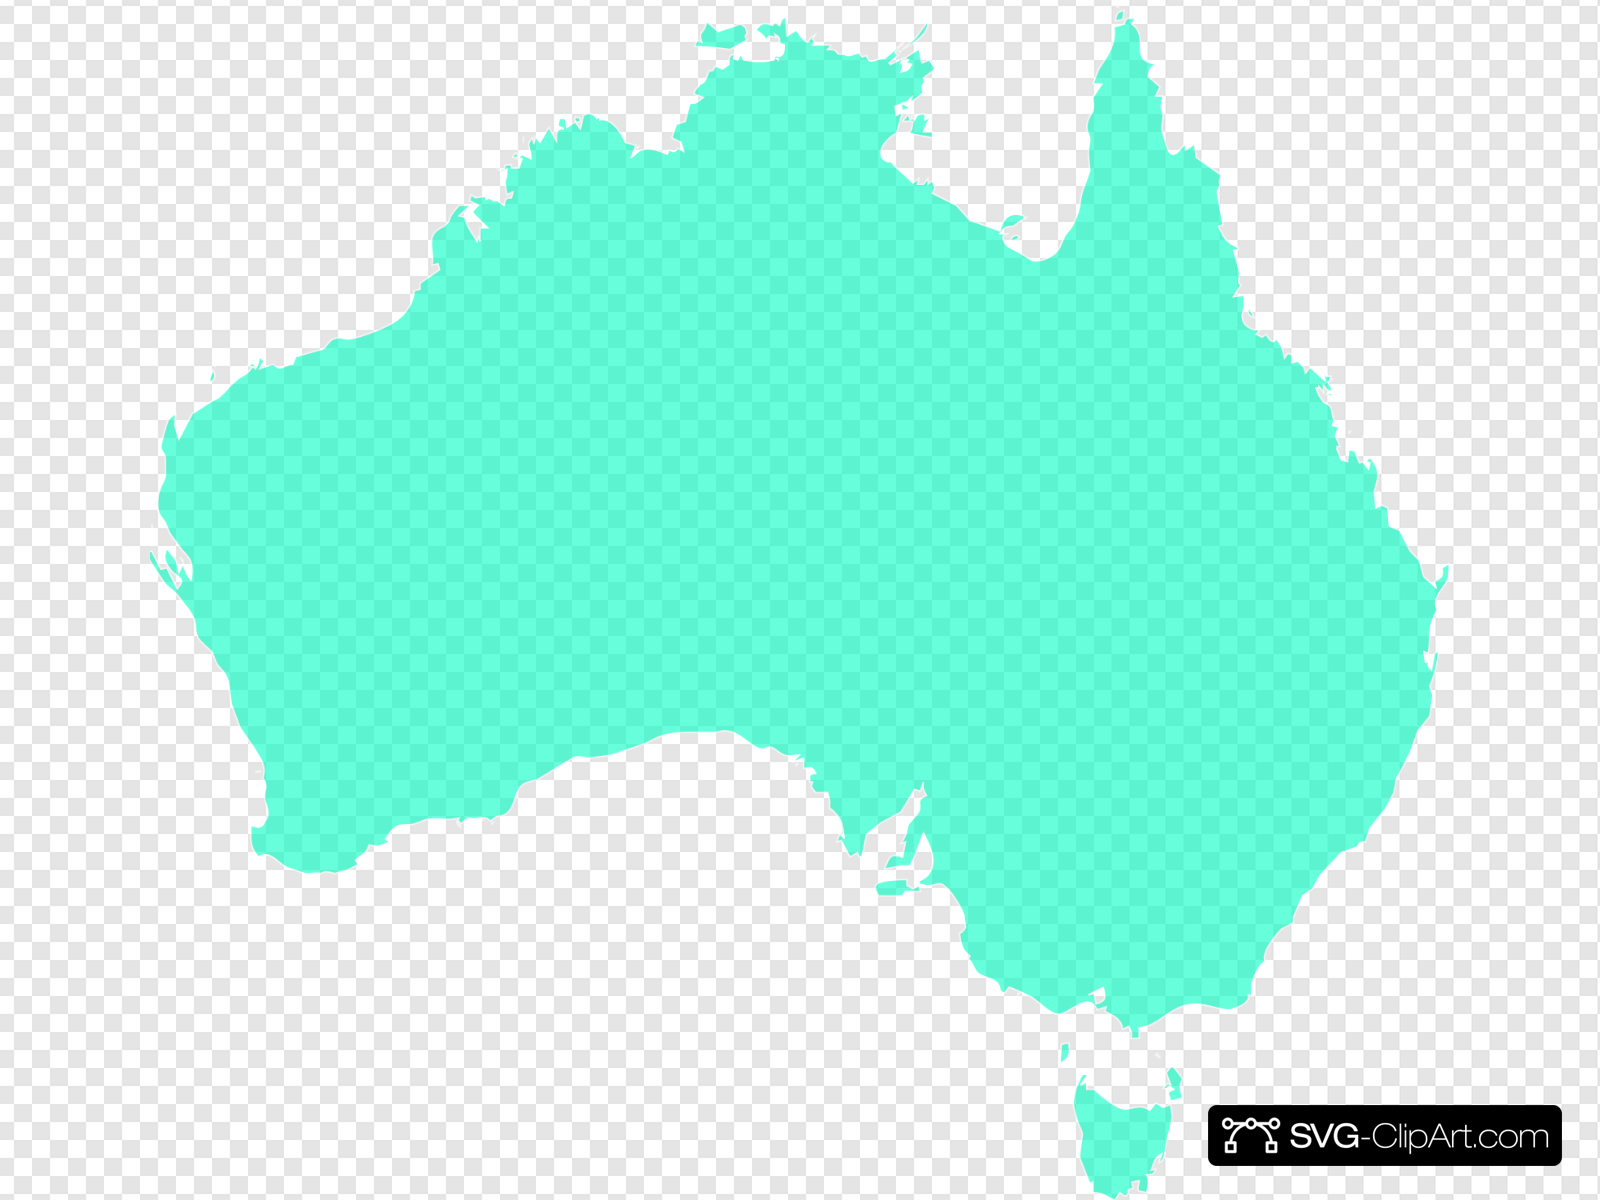 Australia Map Aqua 2 Clip art, Icon and SVG.